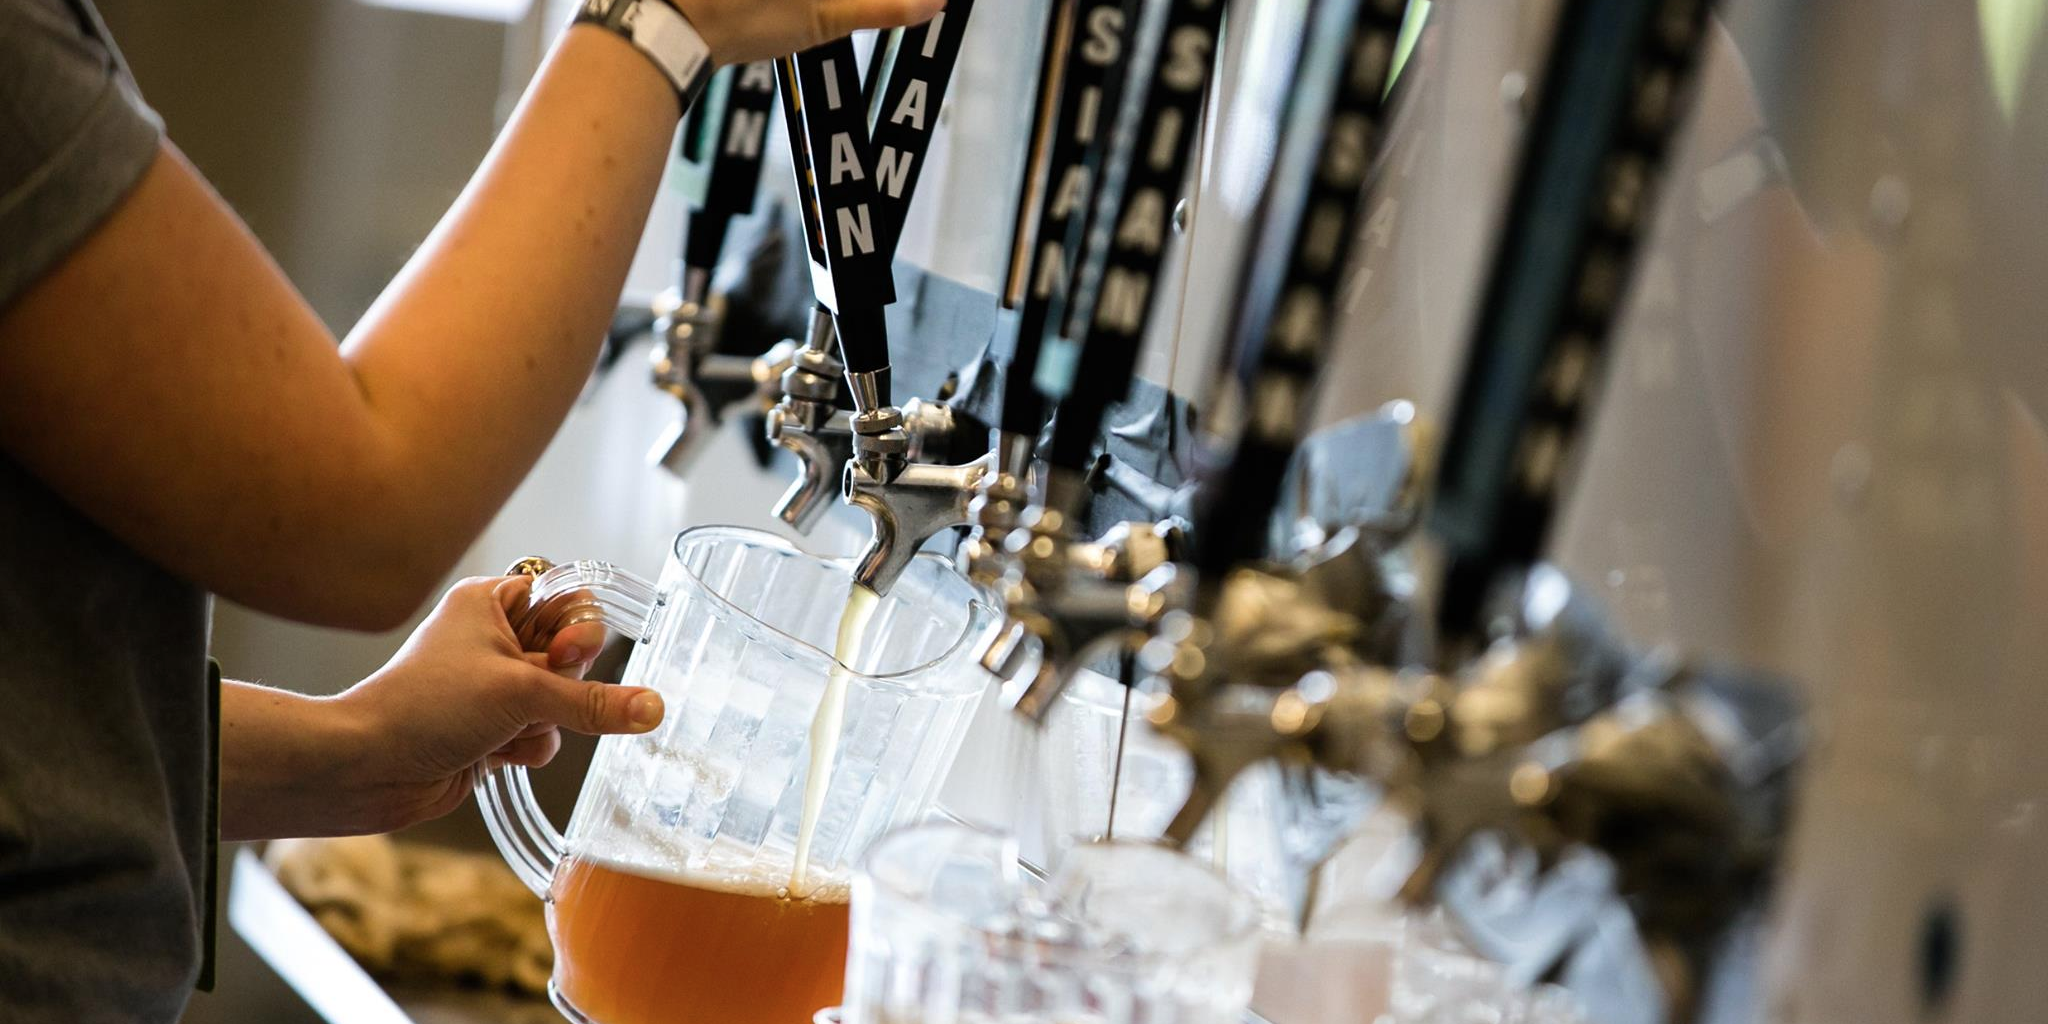 Budweiser-owned Brewers Accuse Craft Beer Of Being Not 'punk' As Beer Civil War Heats Up photo